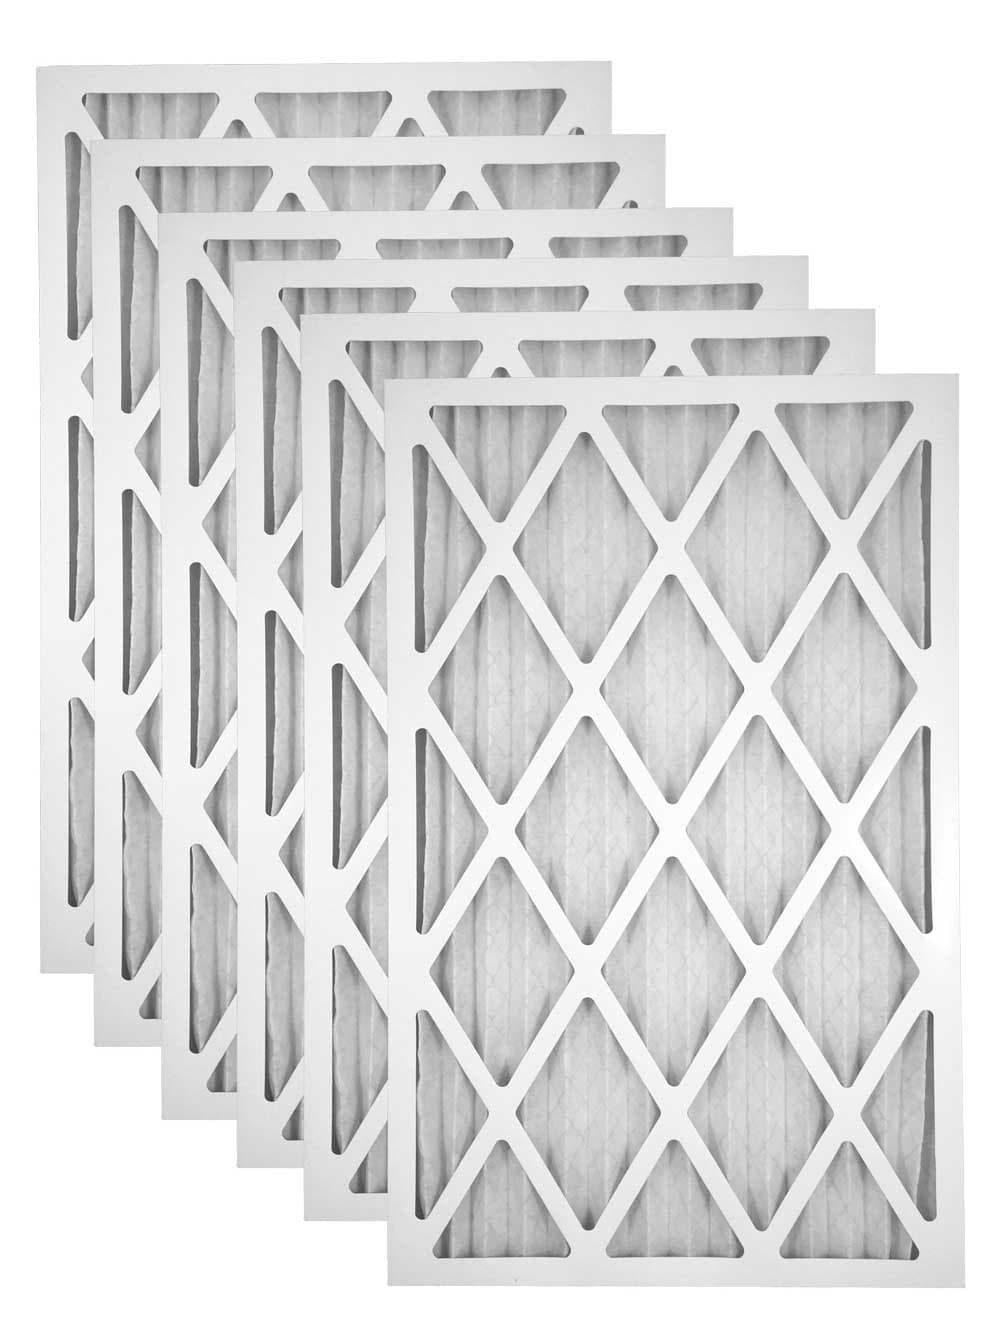 10x20x1 Merv 13 AC Furnace Filter - Case of 6